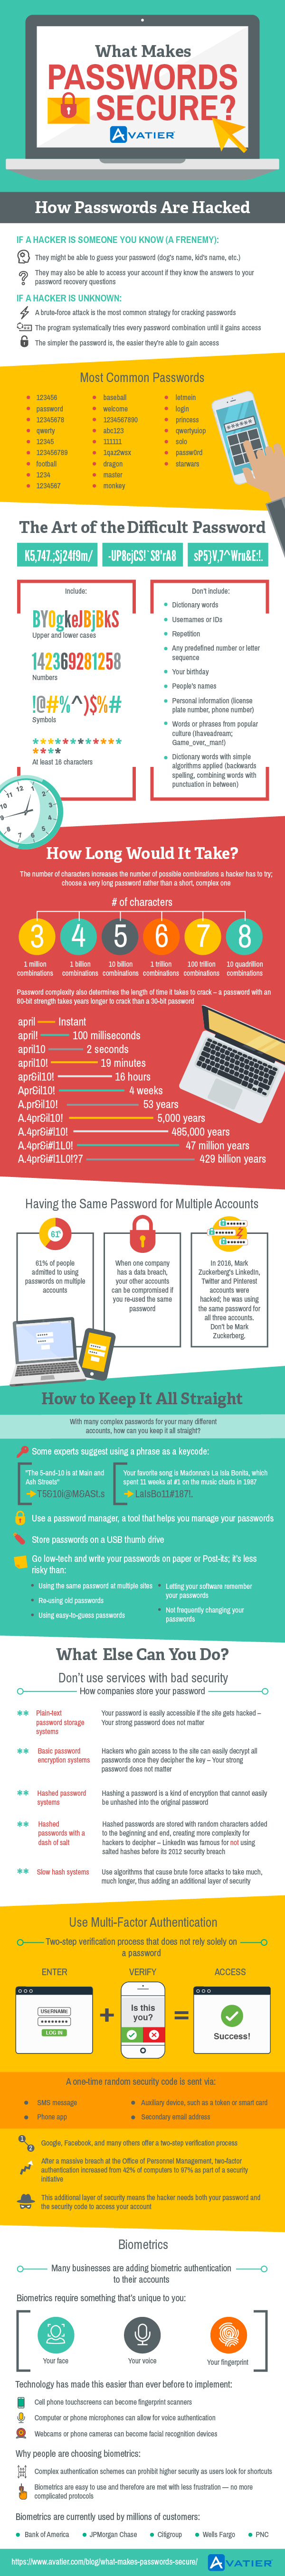 What Makes Passwords Secure?